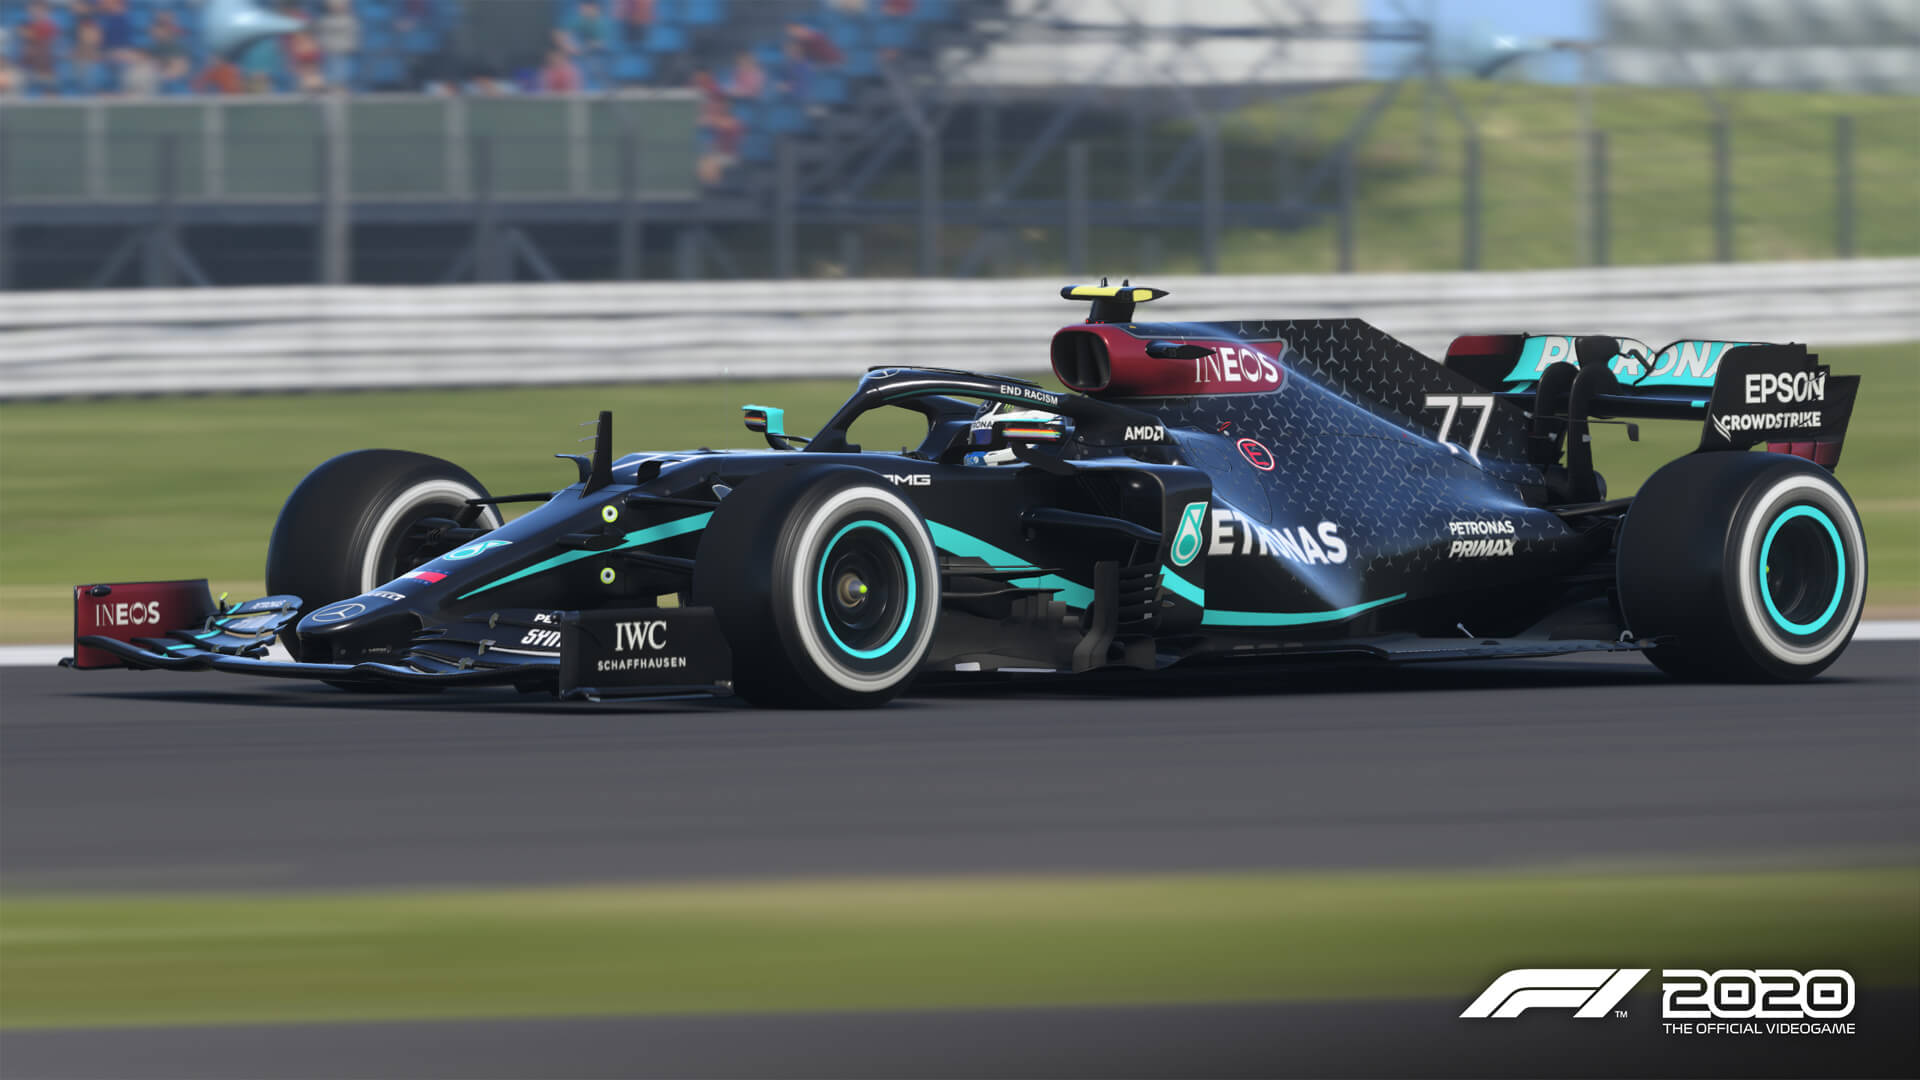 F1 2020 Patch 1.07 fixes crashes & bugs, improves ...